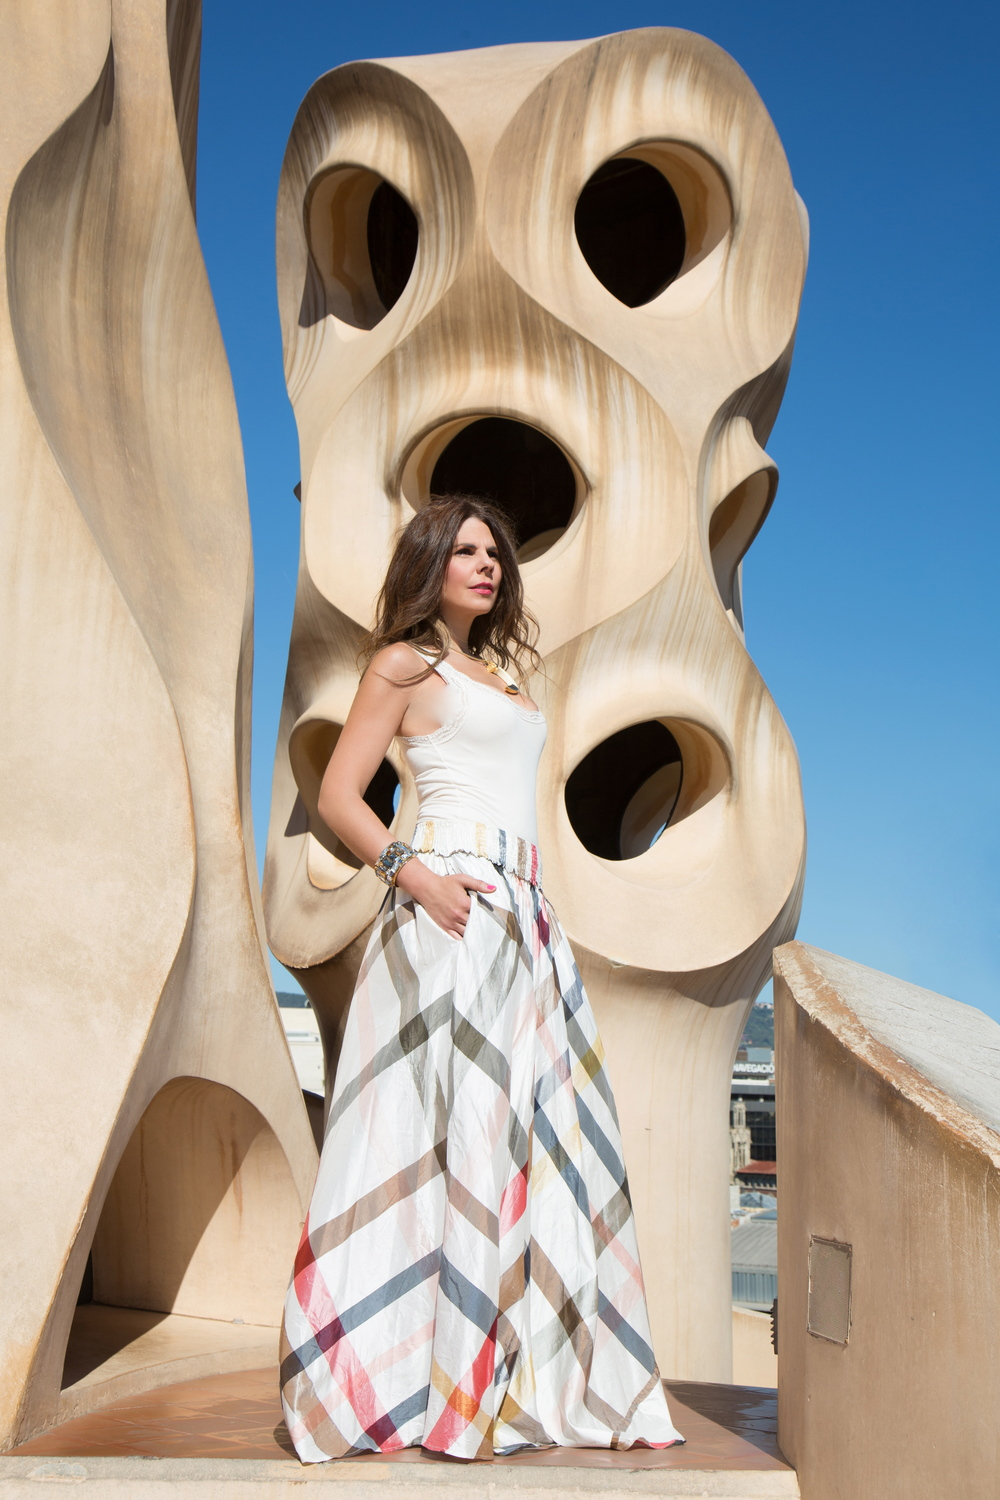 The rooftop of La Pedrera in Barcelona. Photo by Jordi Pelegri. Skirt by Calypso St. Barth.